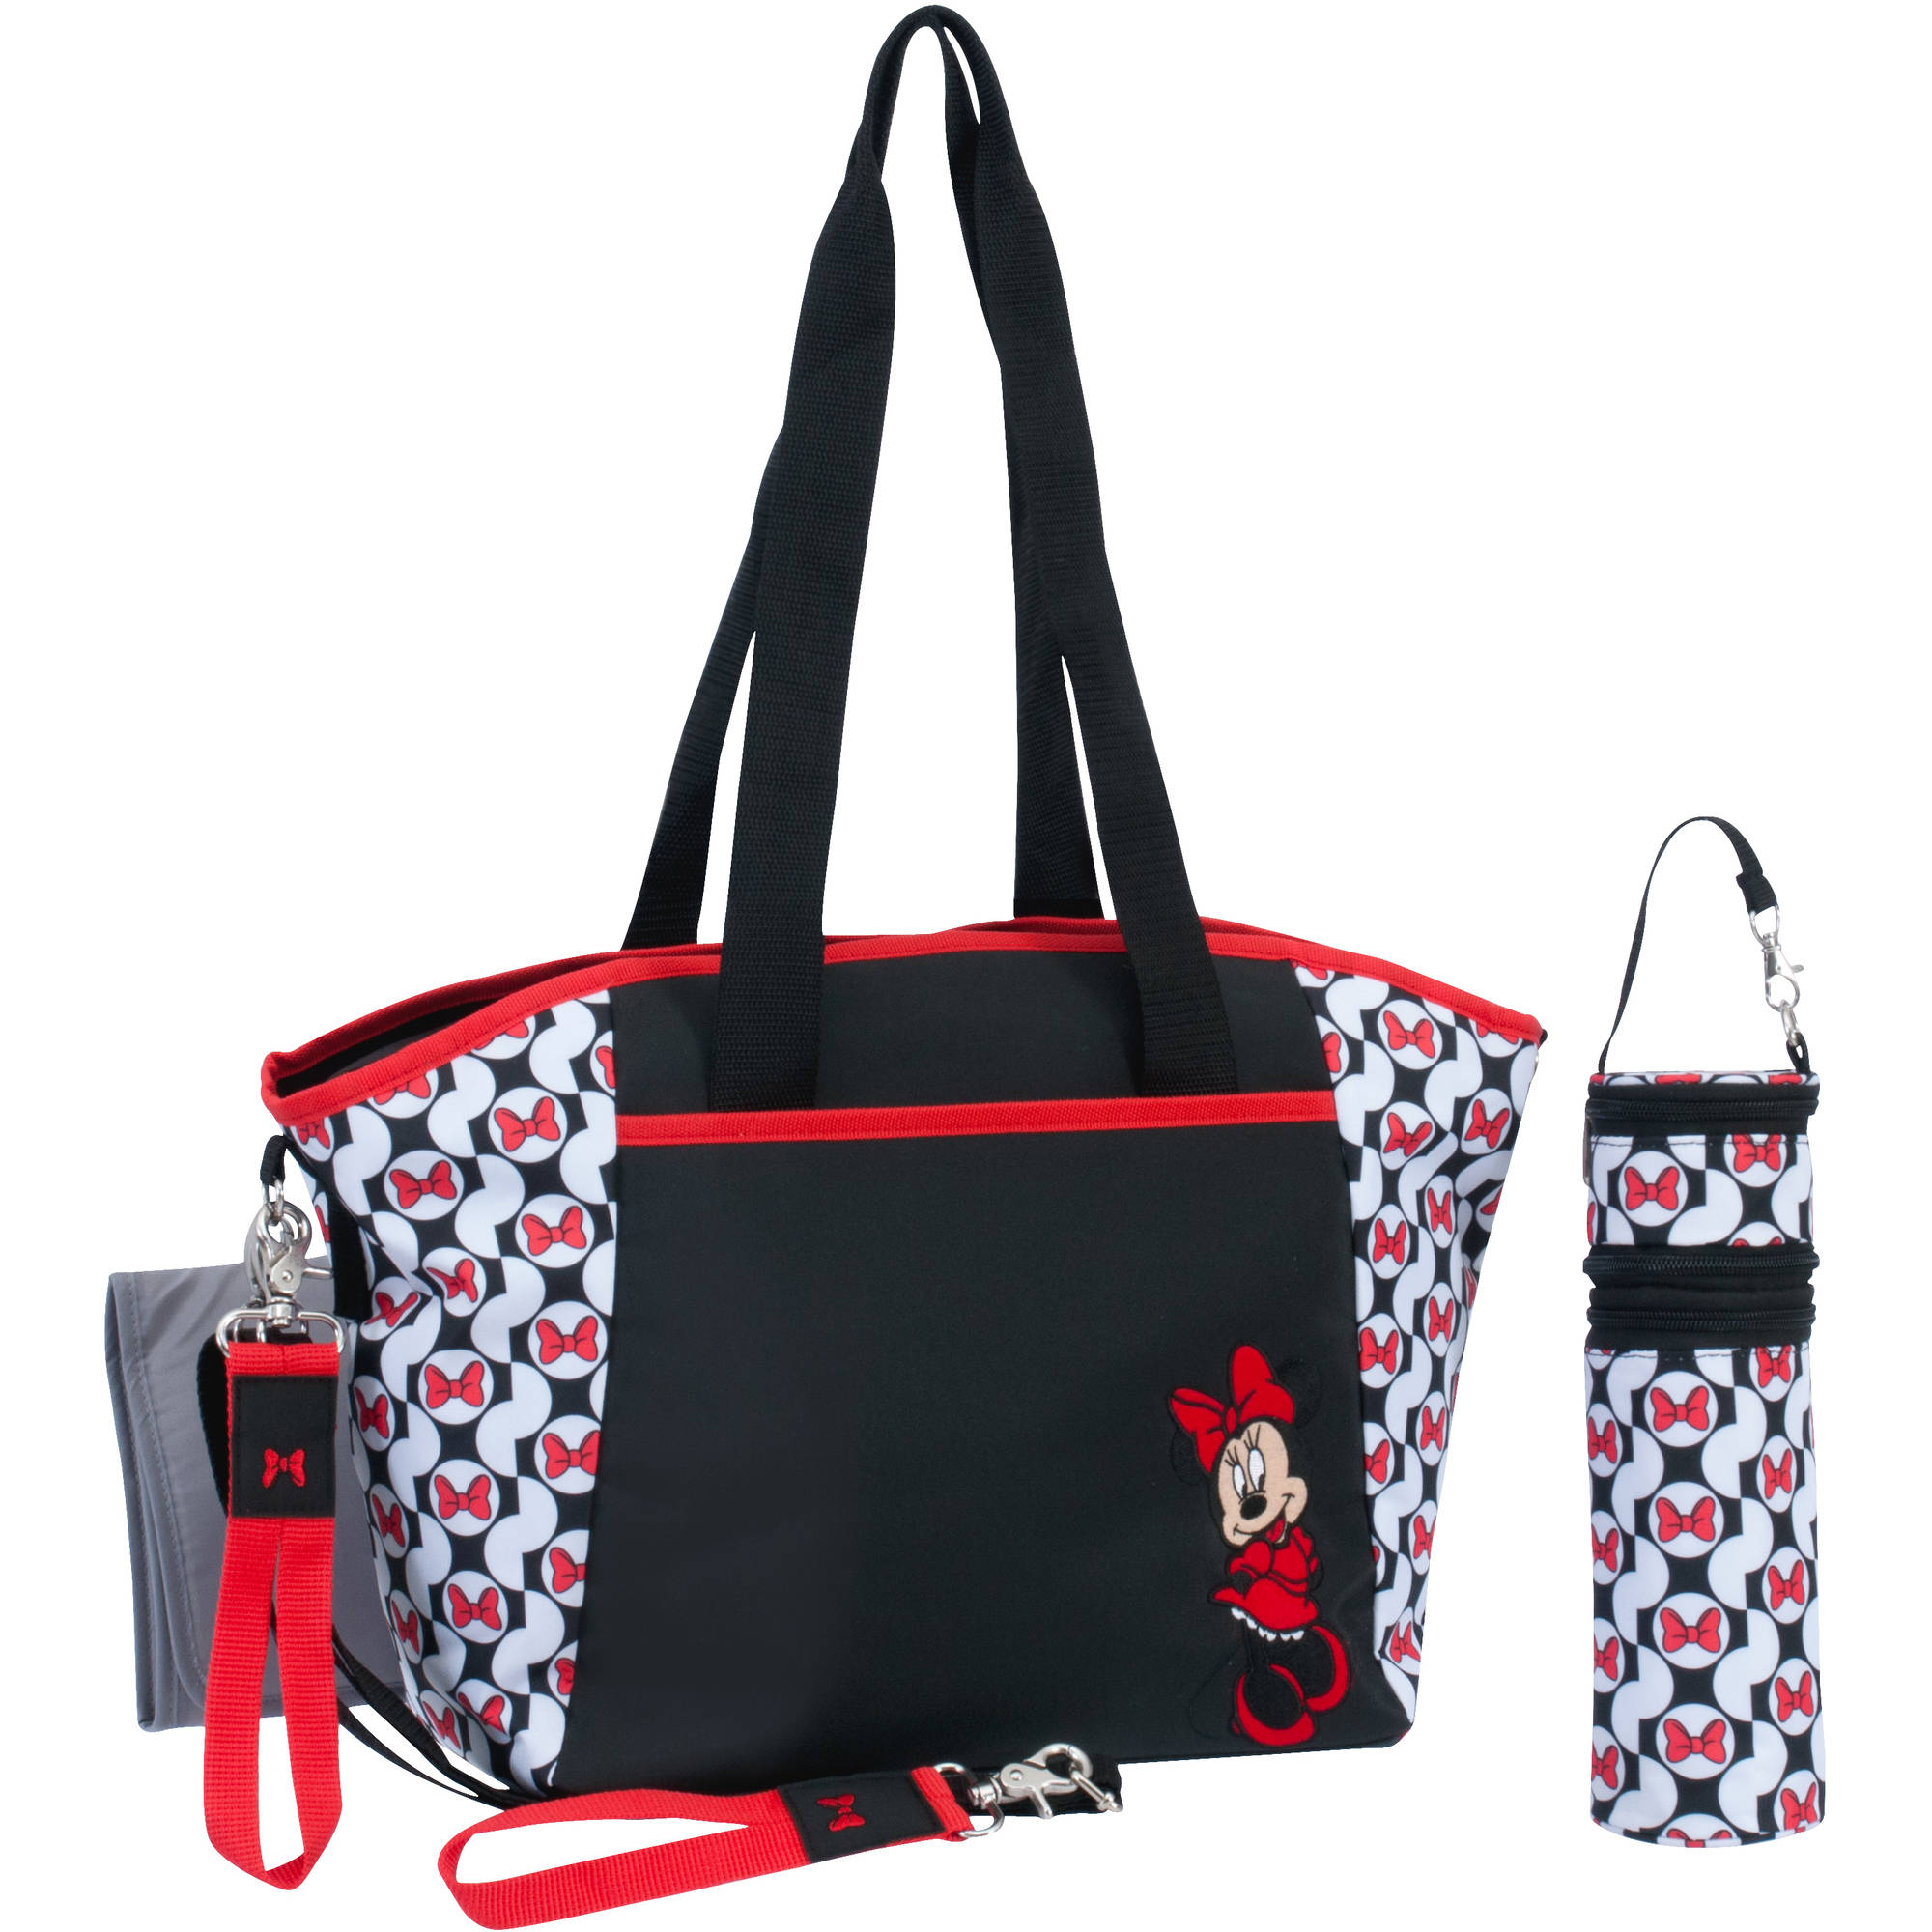 Disney Minnie Mouse Tote Diaper Bag 5pc set, Black/White